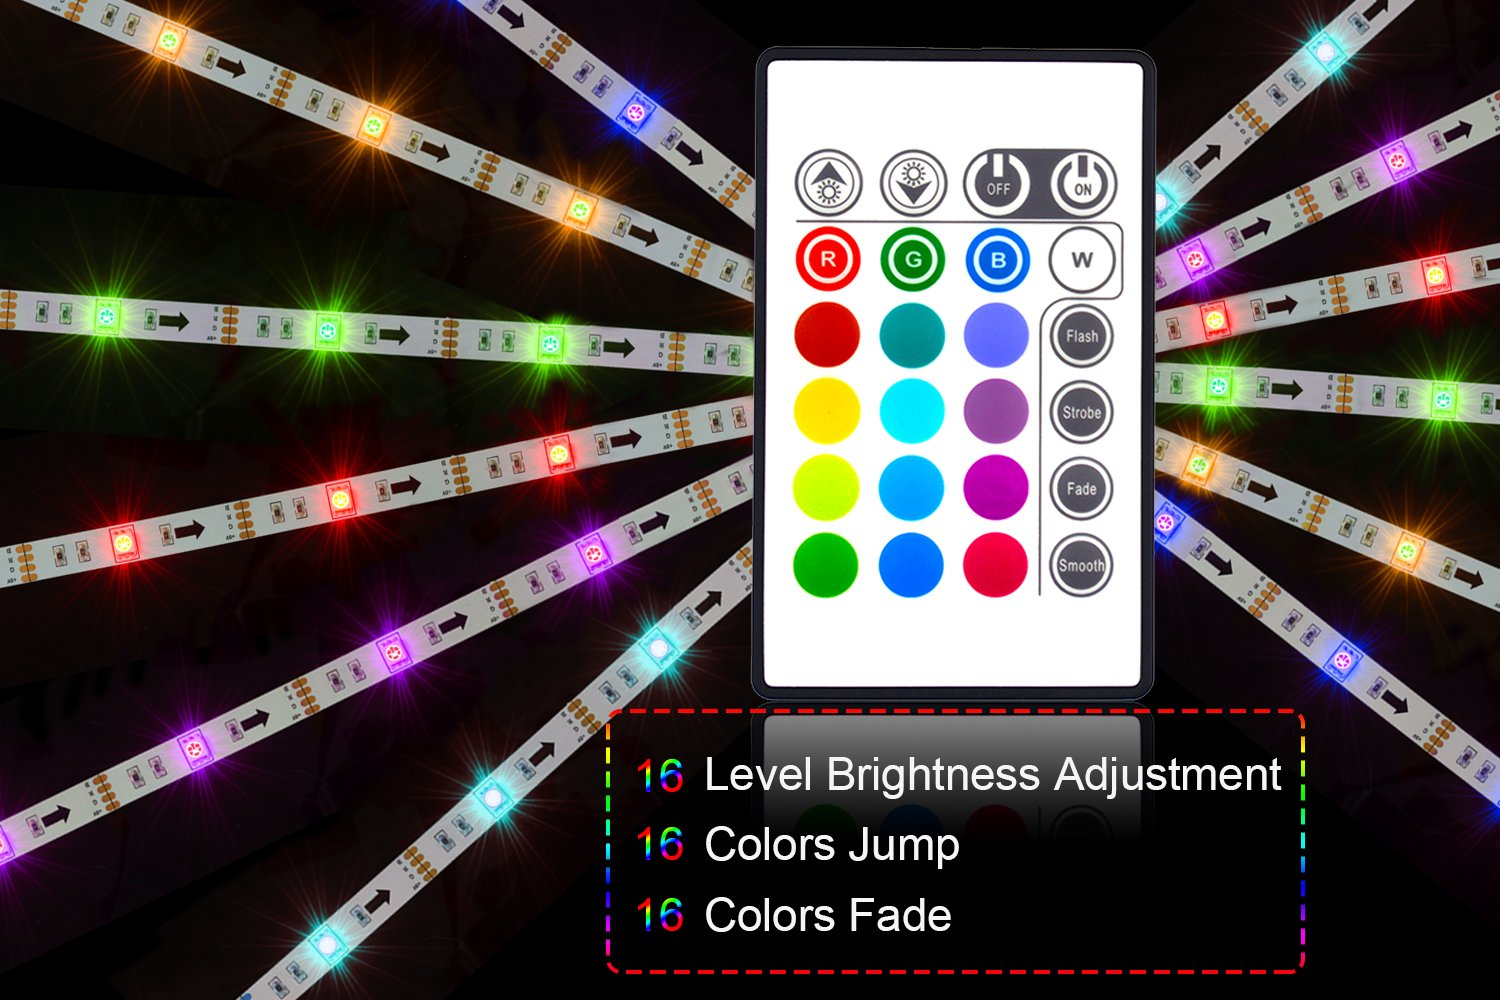 Led Strip Lights 6.56ft for 40-60in TV, PANGTON VILLA USB LED TV Backlight Kit with Remote - 16 Color Changing 5050 LEDs Bias Lighting for HDTV by PANGTON VILLA (Image #5)